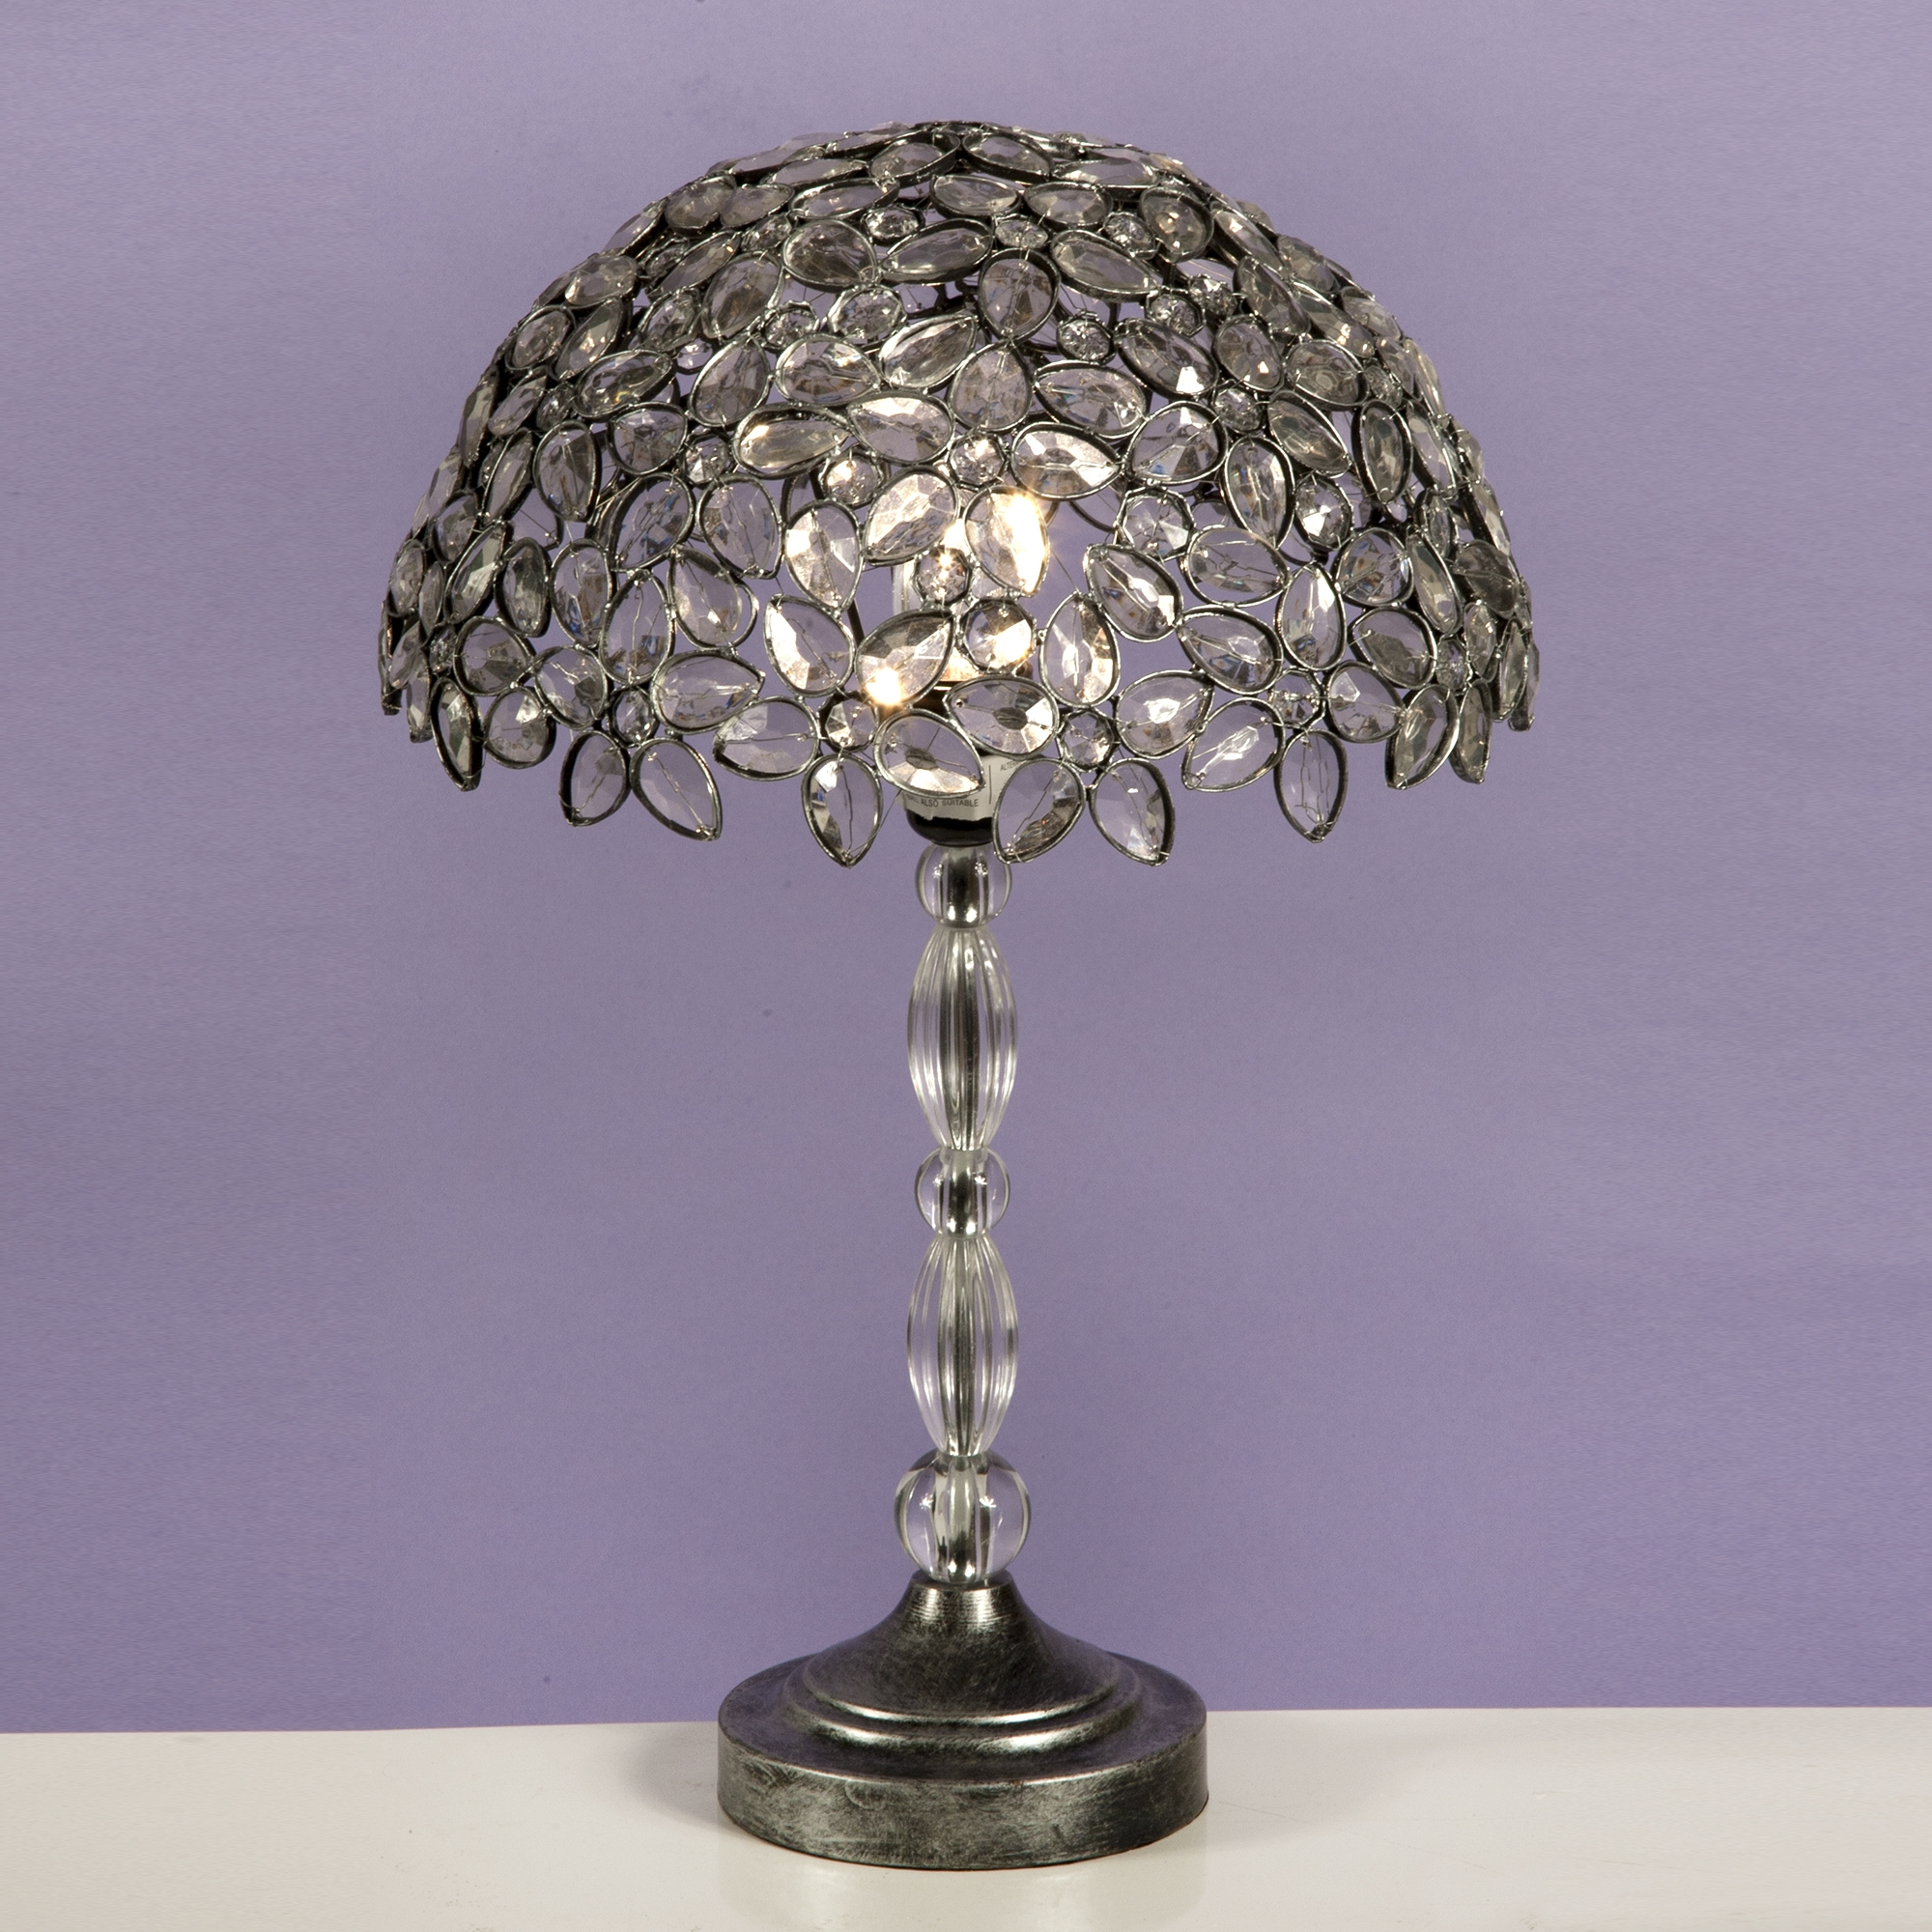 Jewelled Table Lamp - Antique Silver